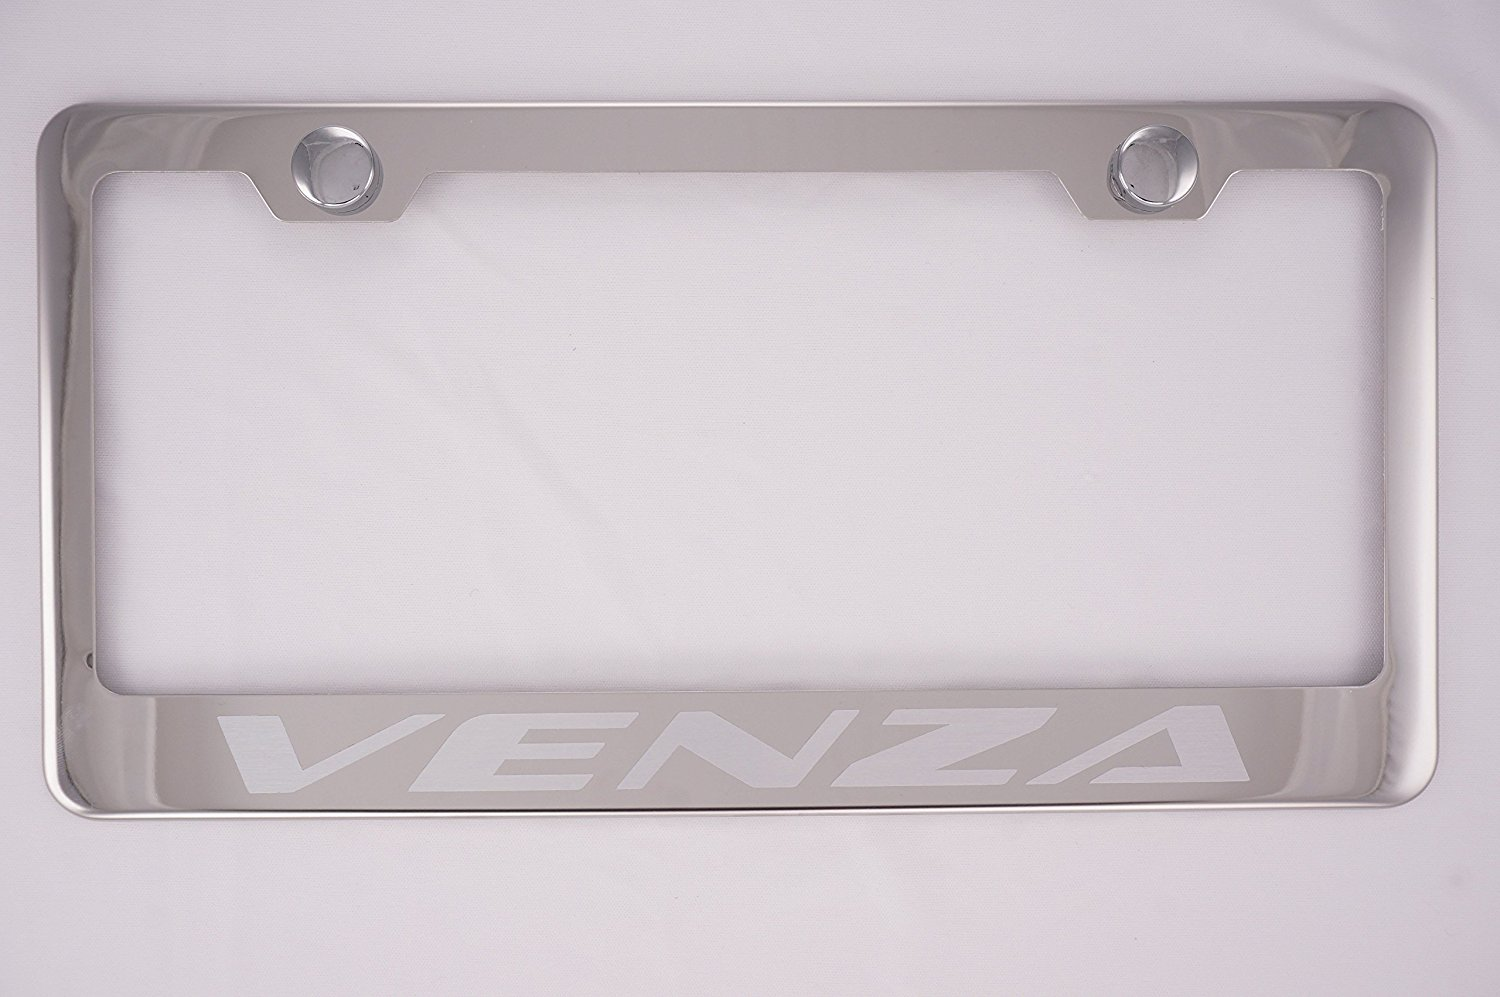 VENZA Toyota Stainless Steel License Plate Frame Rust Free W// Bolt Cap